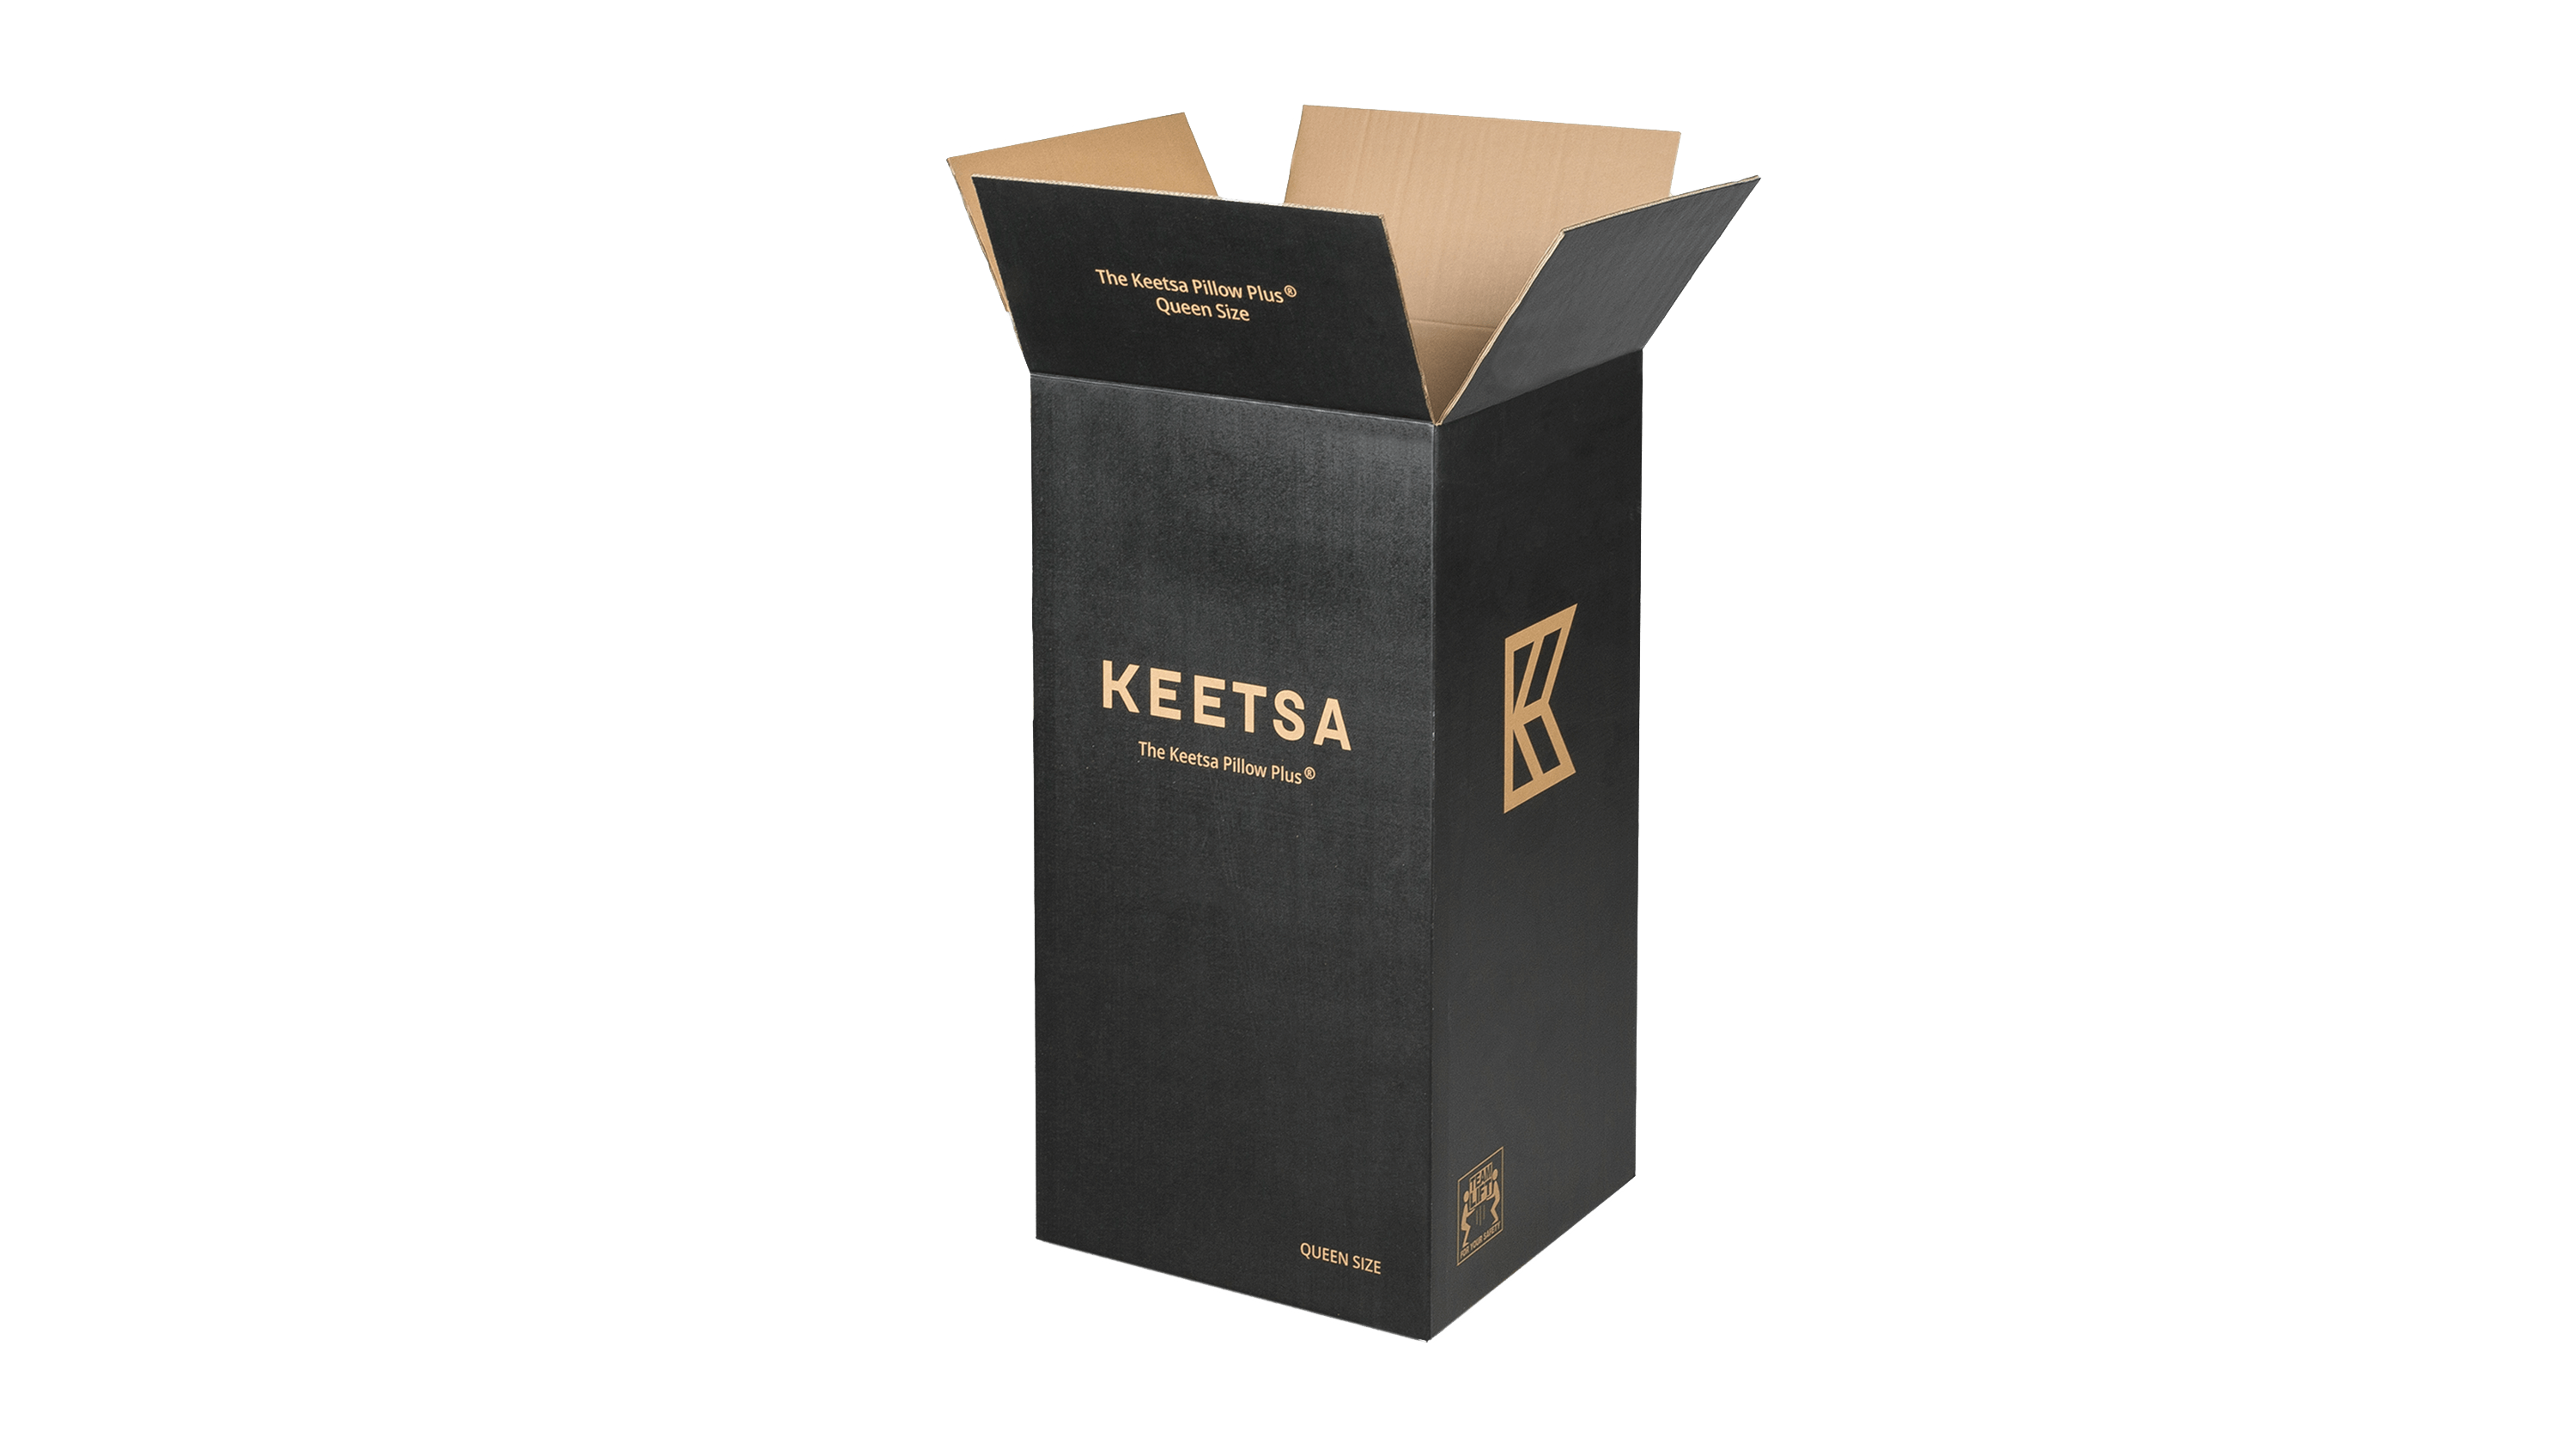 What's inside - Keetsa Mattresses